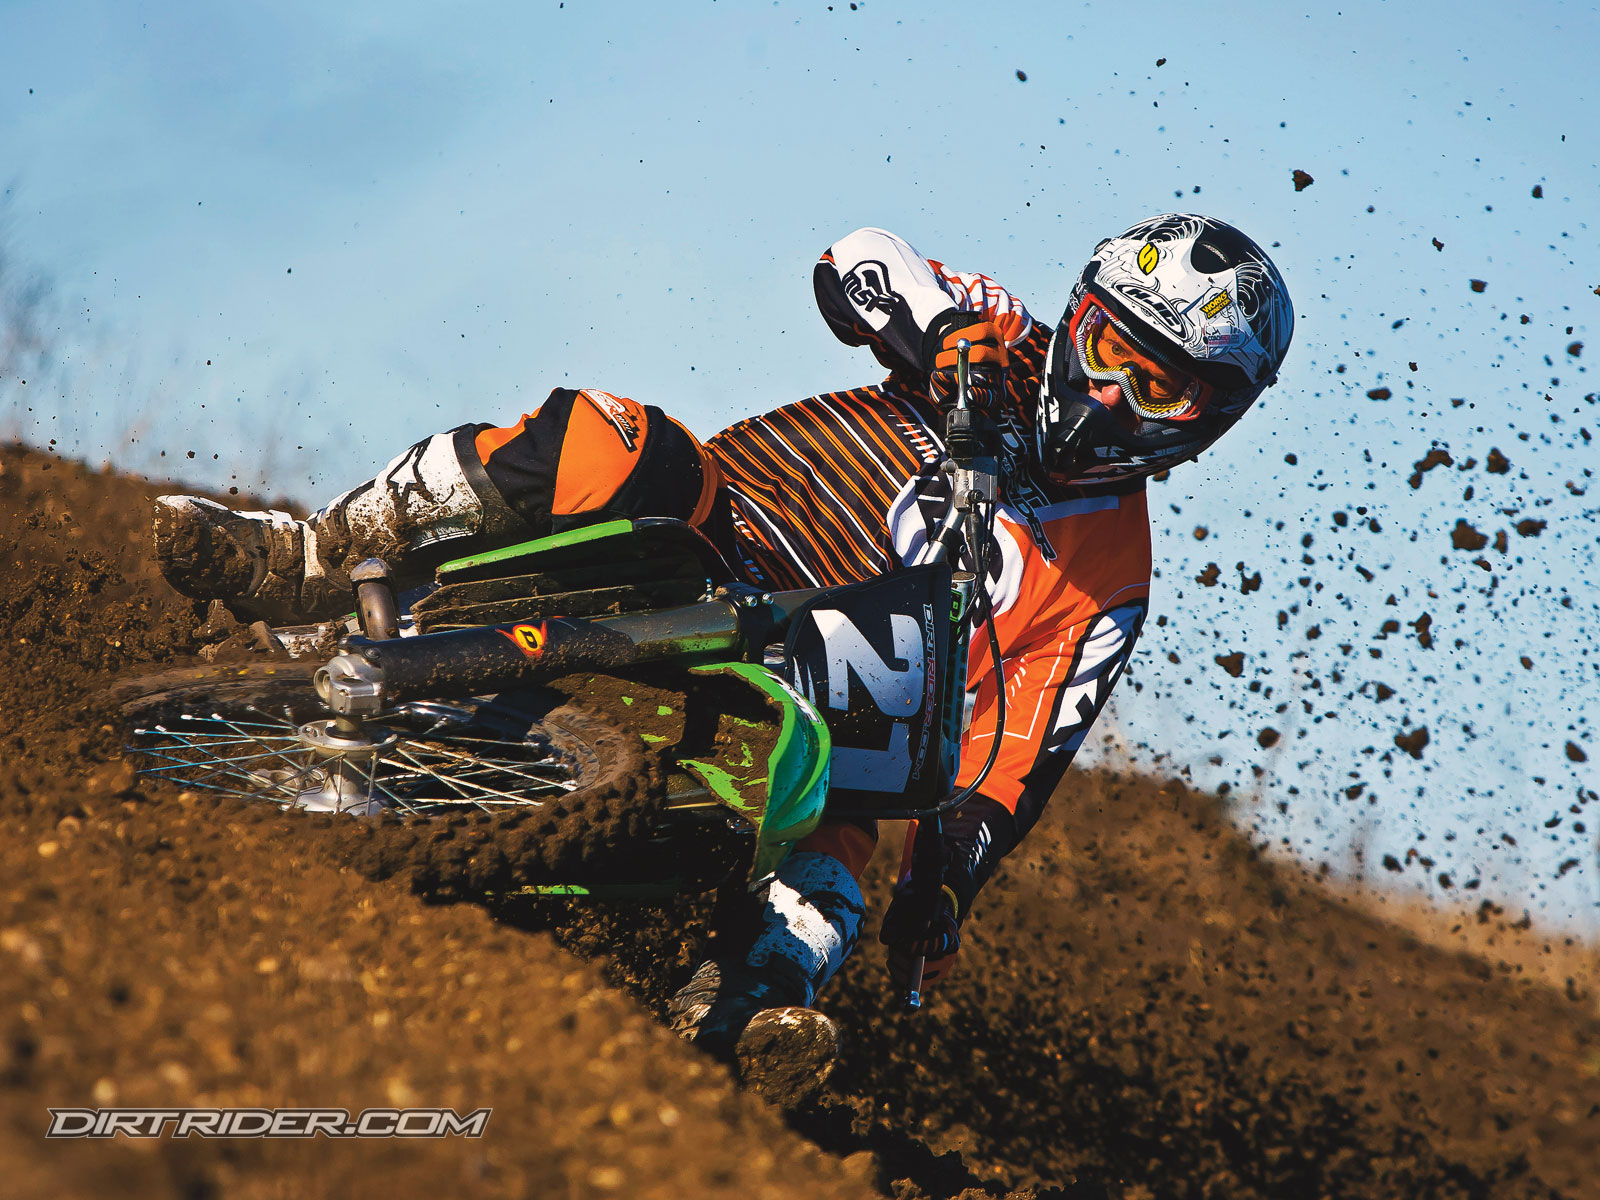 kawasaki dirt bikes wallpapers fashion world